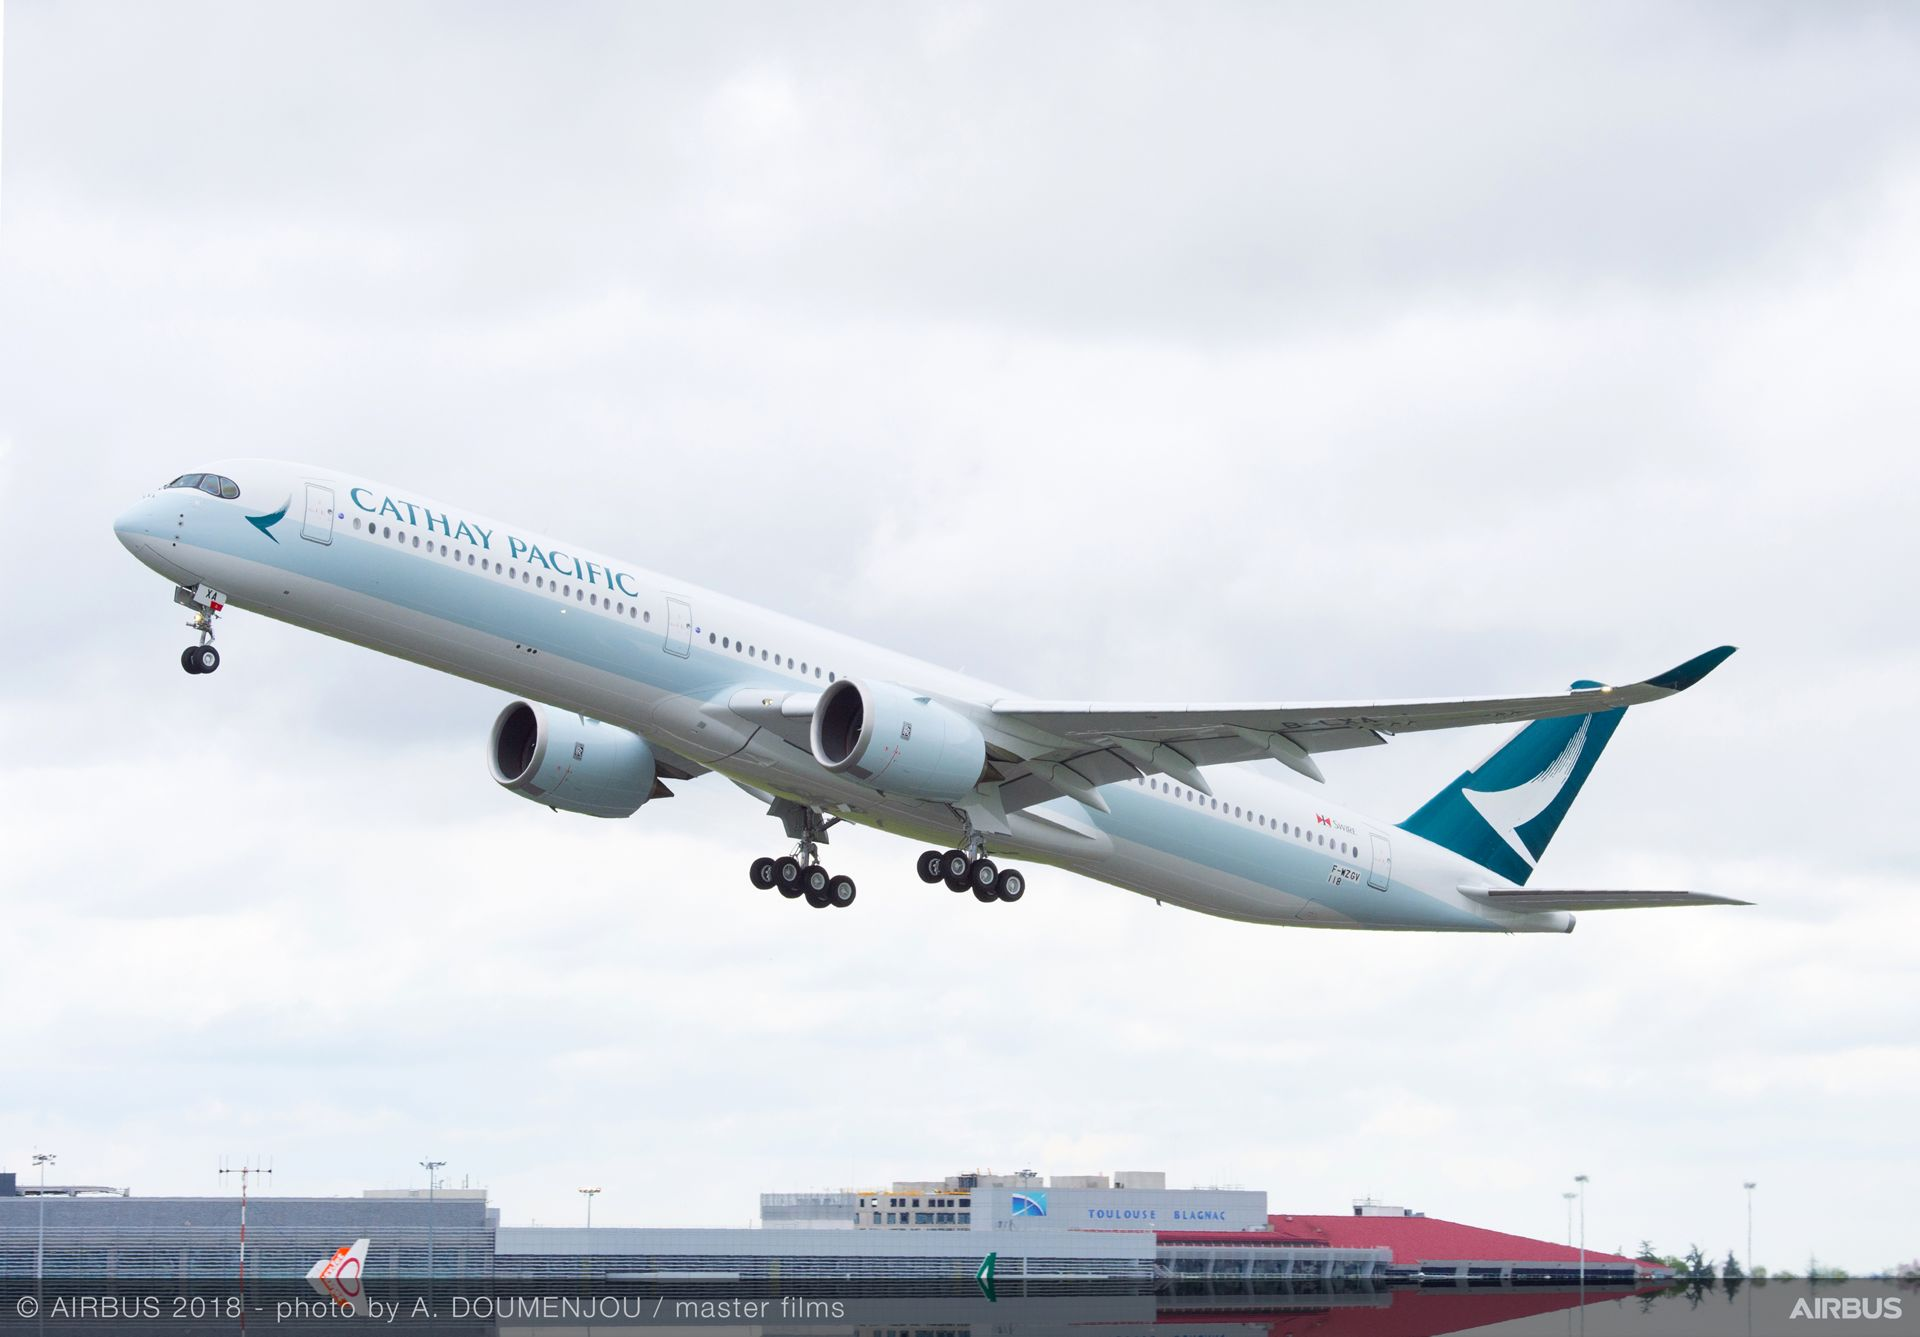 Cathay Pacific's first A350-1000 delivered